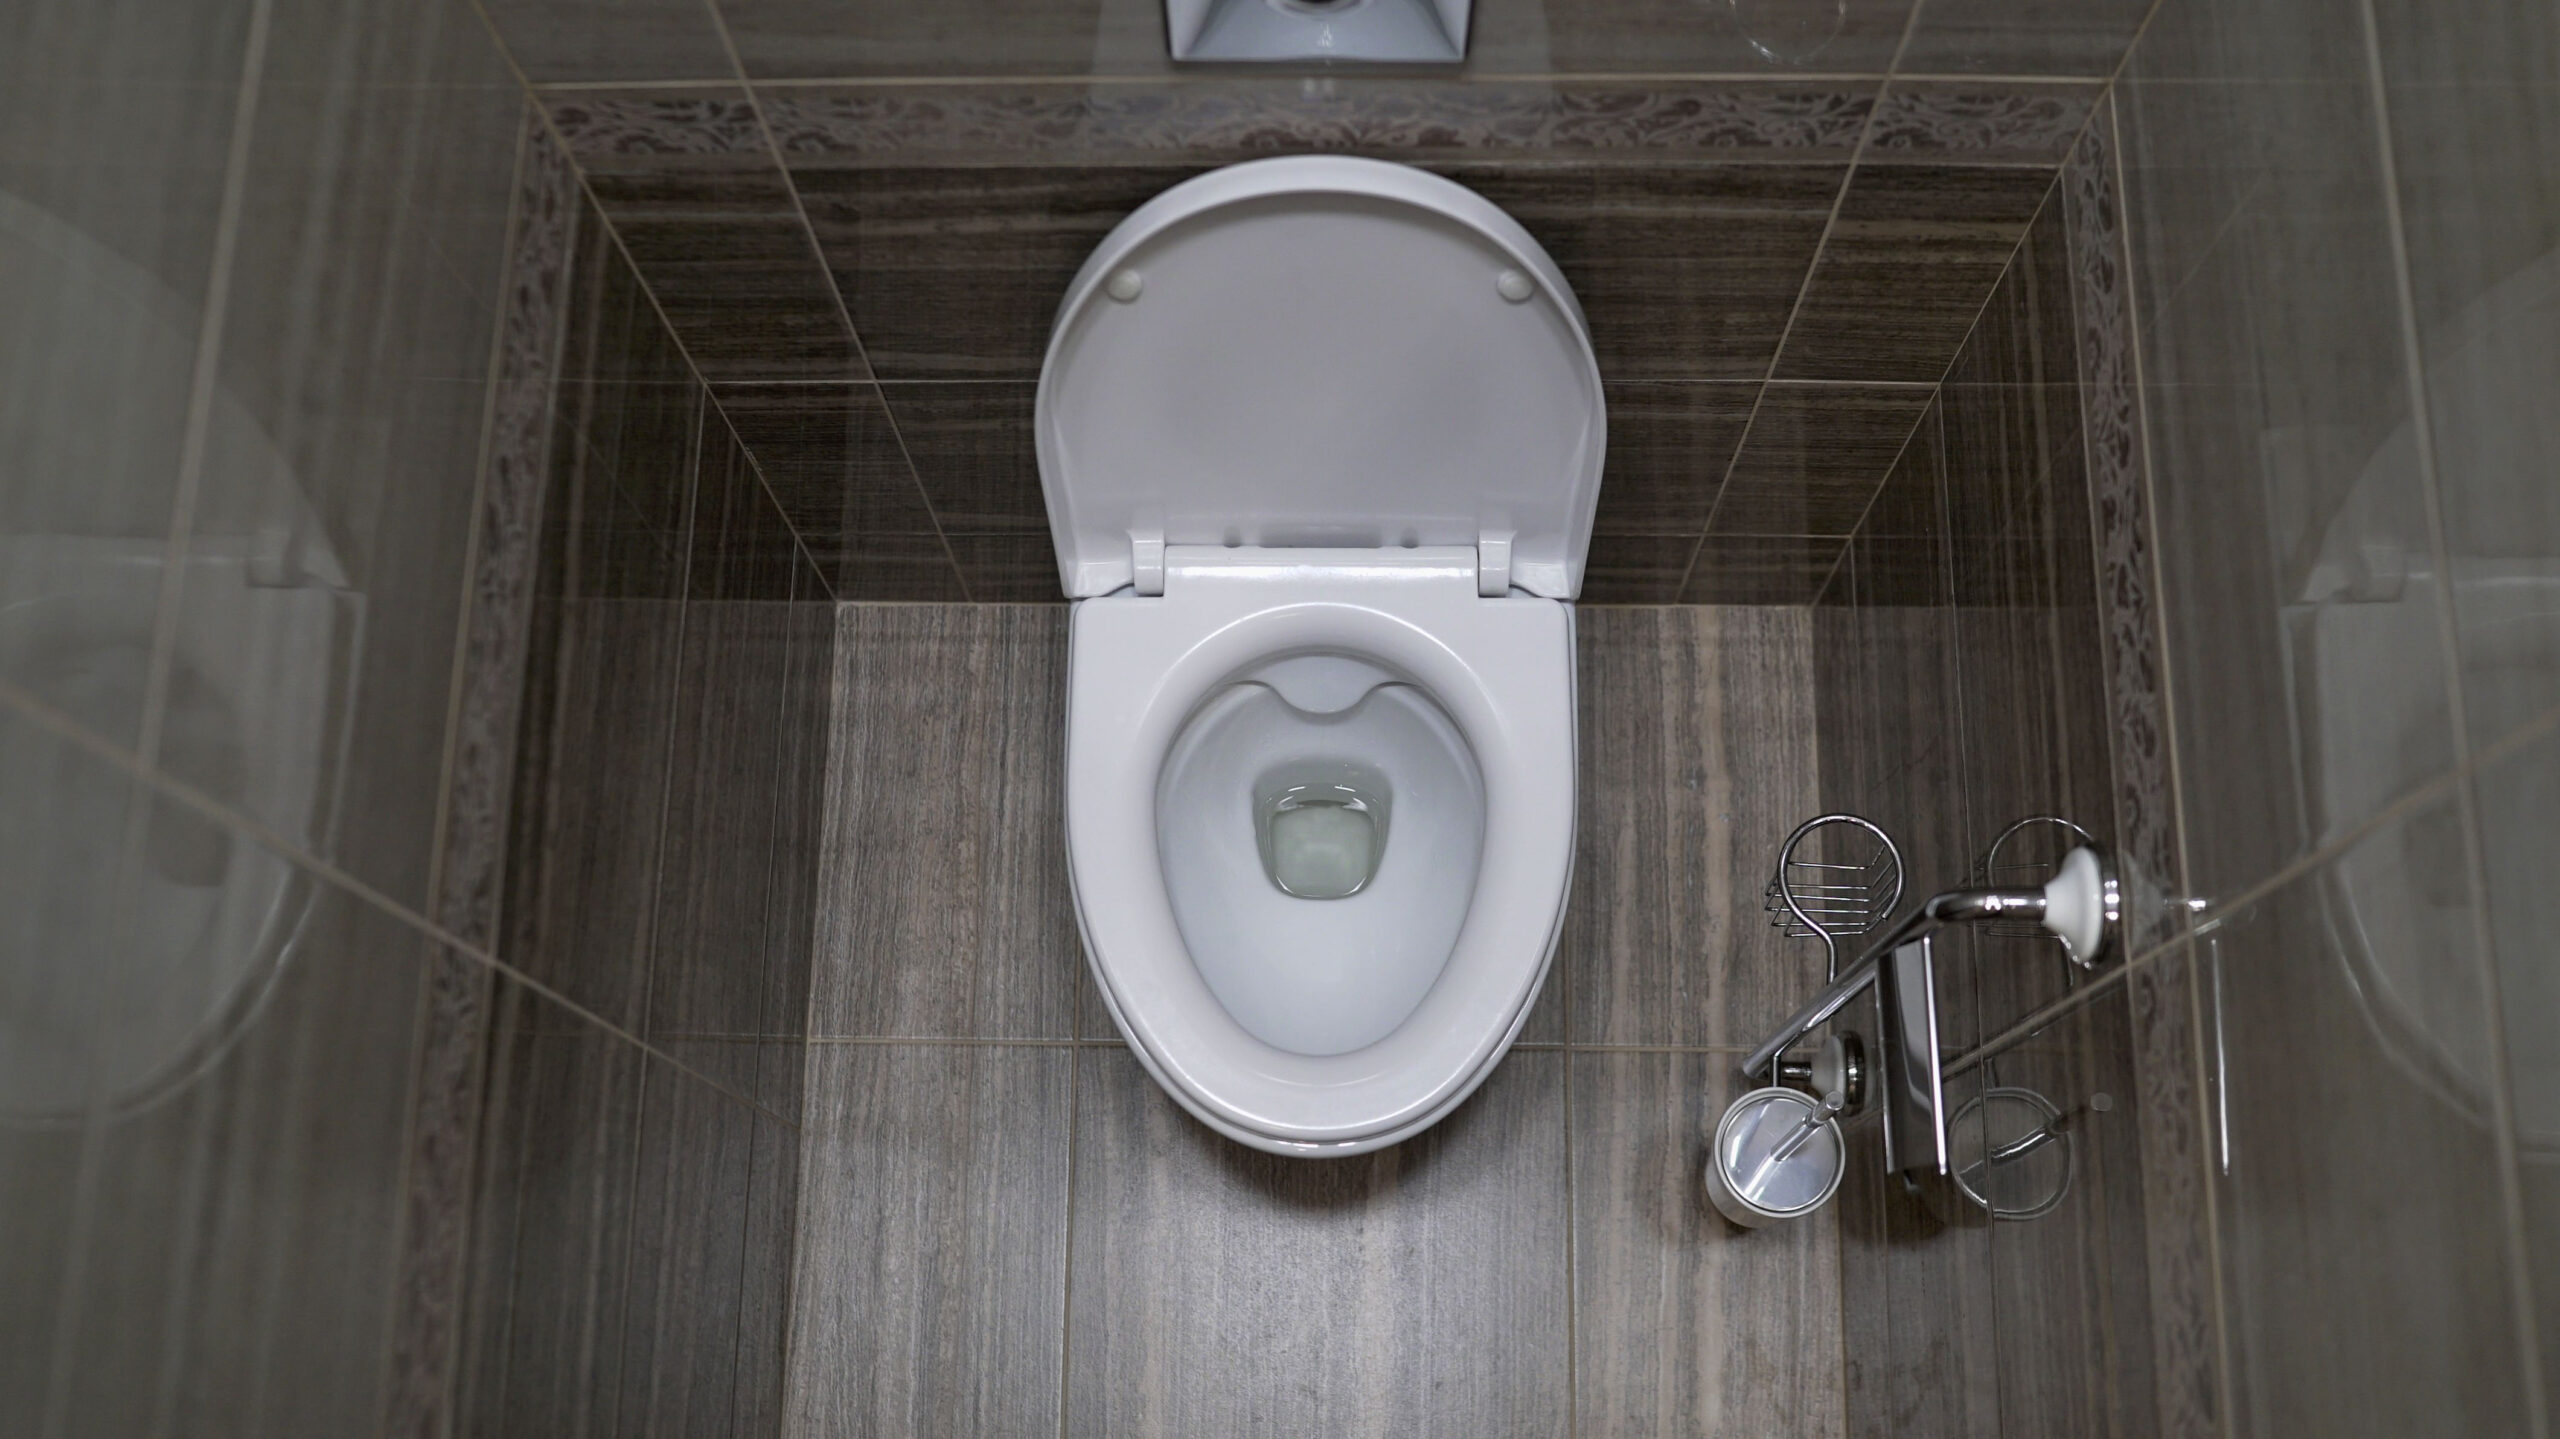 Ever dropped your car keys down the toilet?